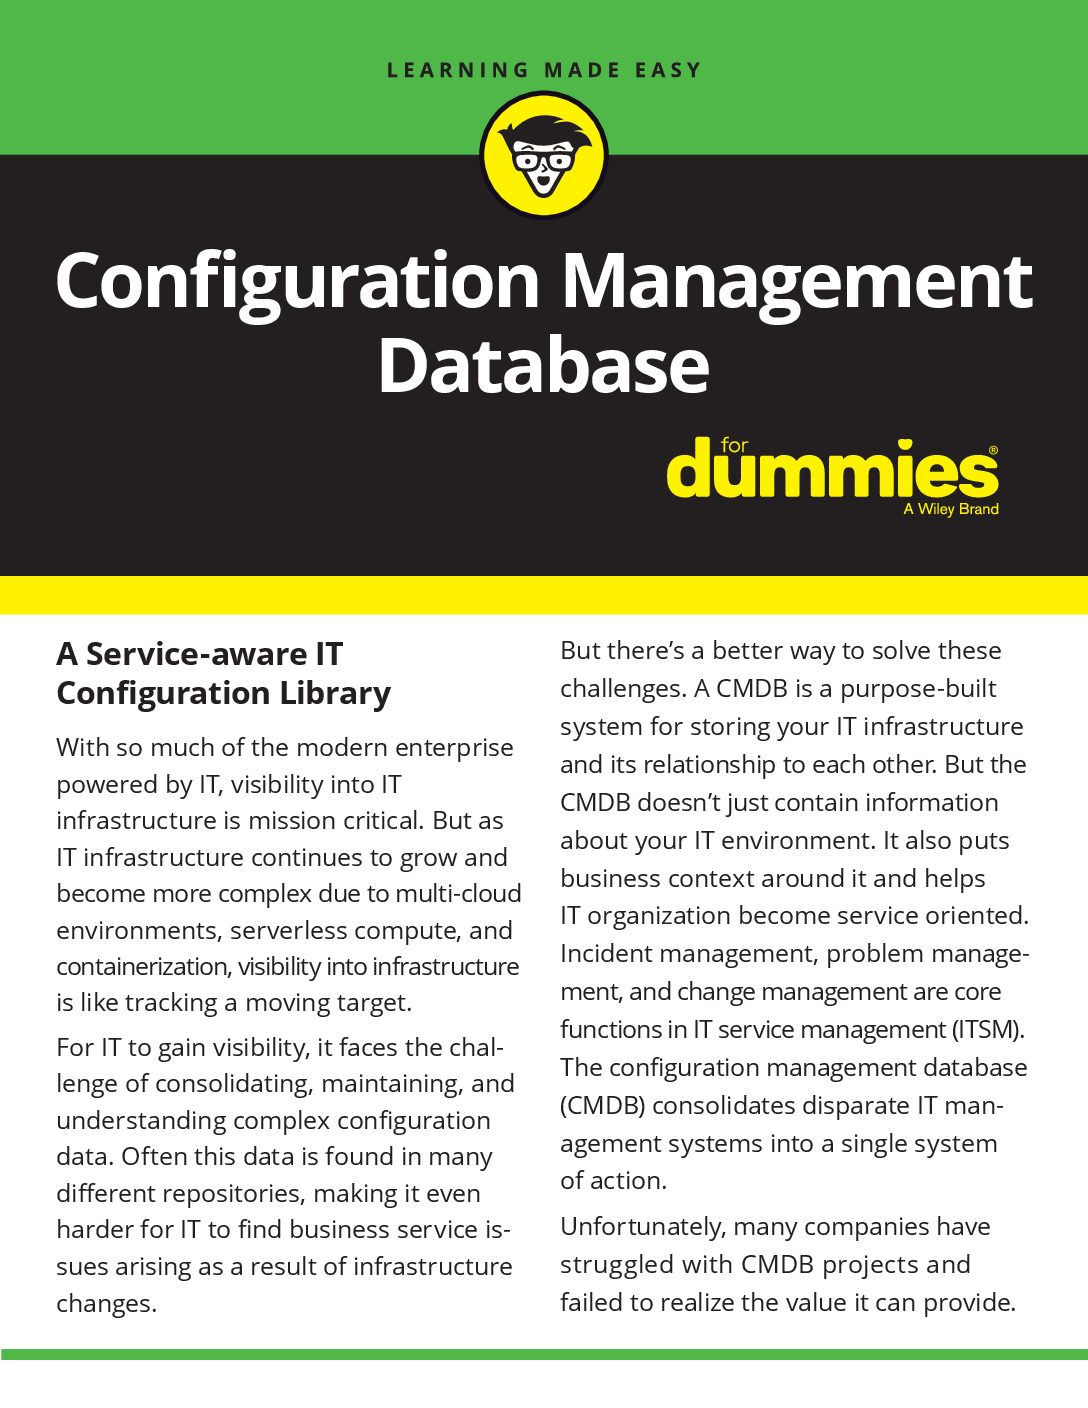 The Configuration Management Database for Dummies iPaper